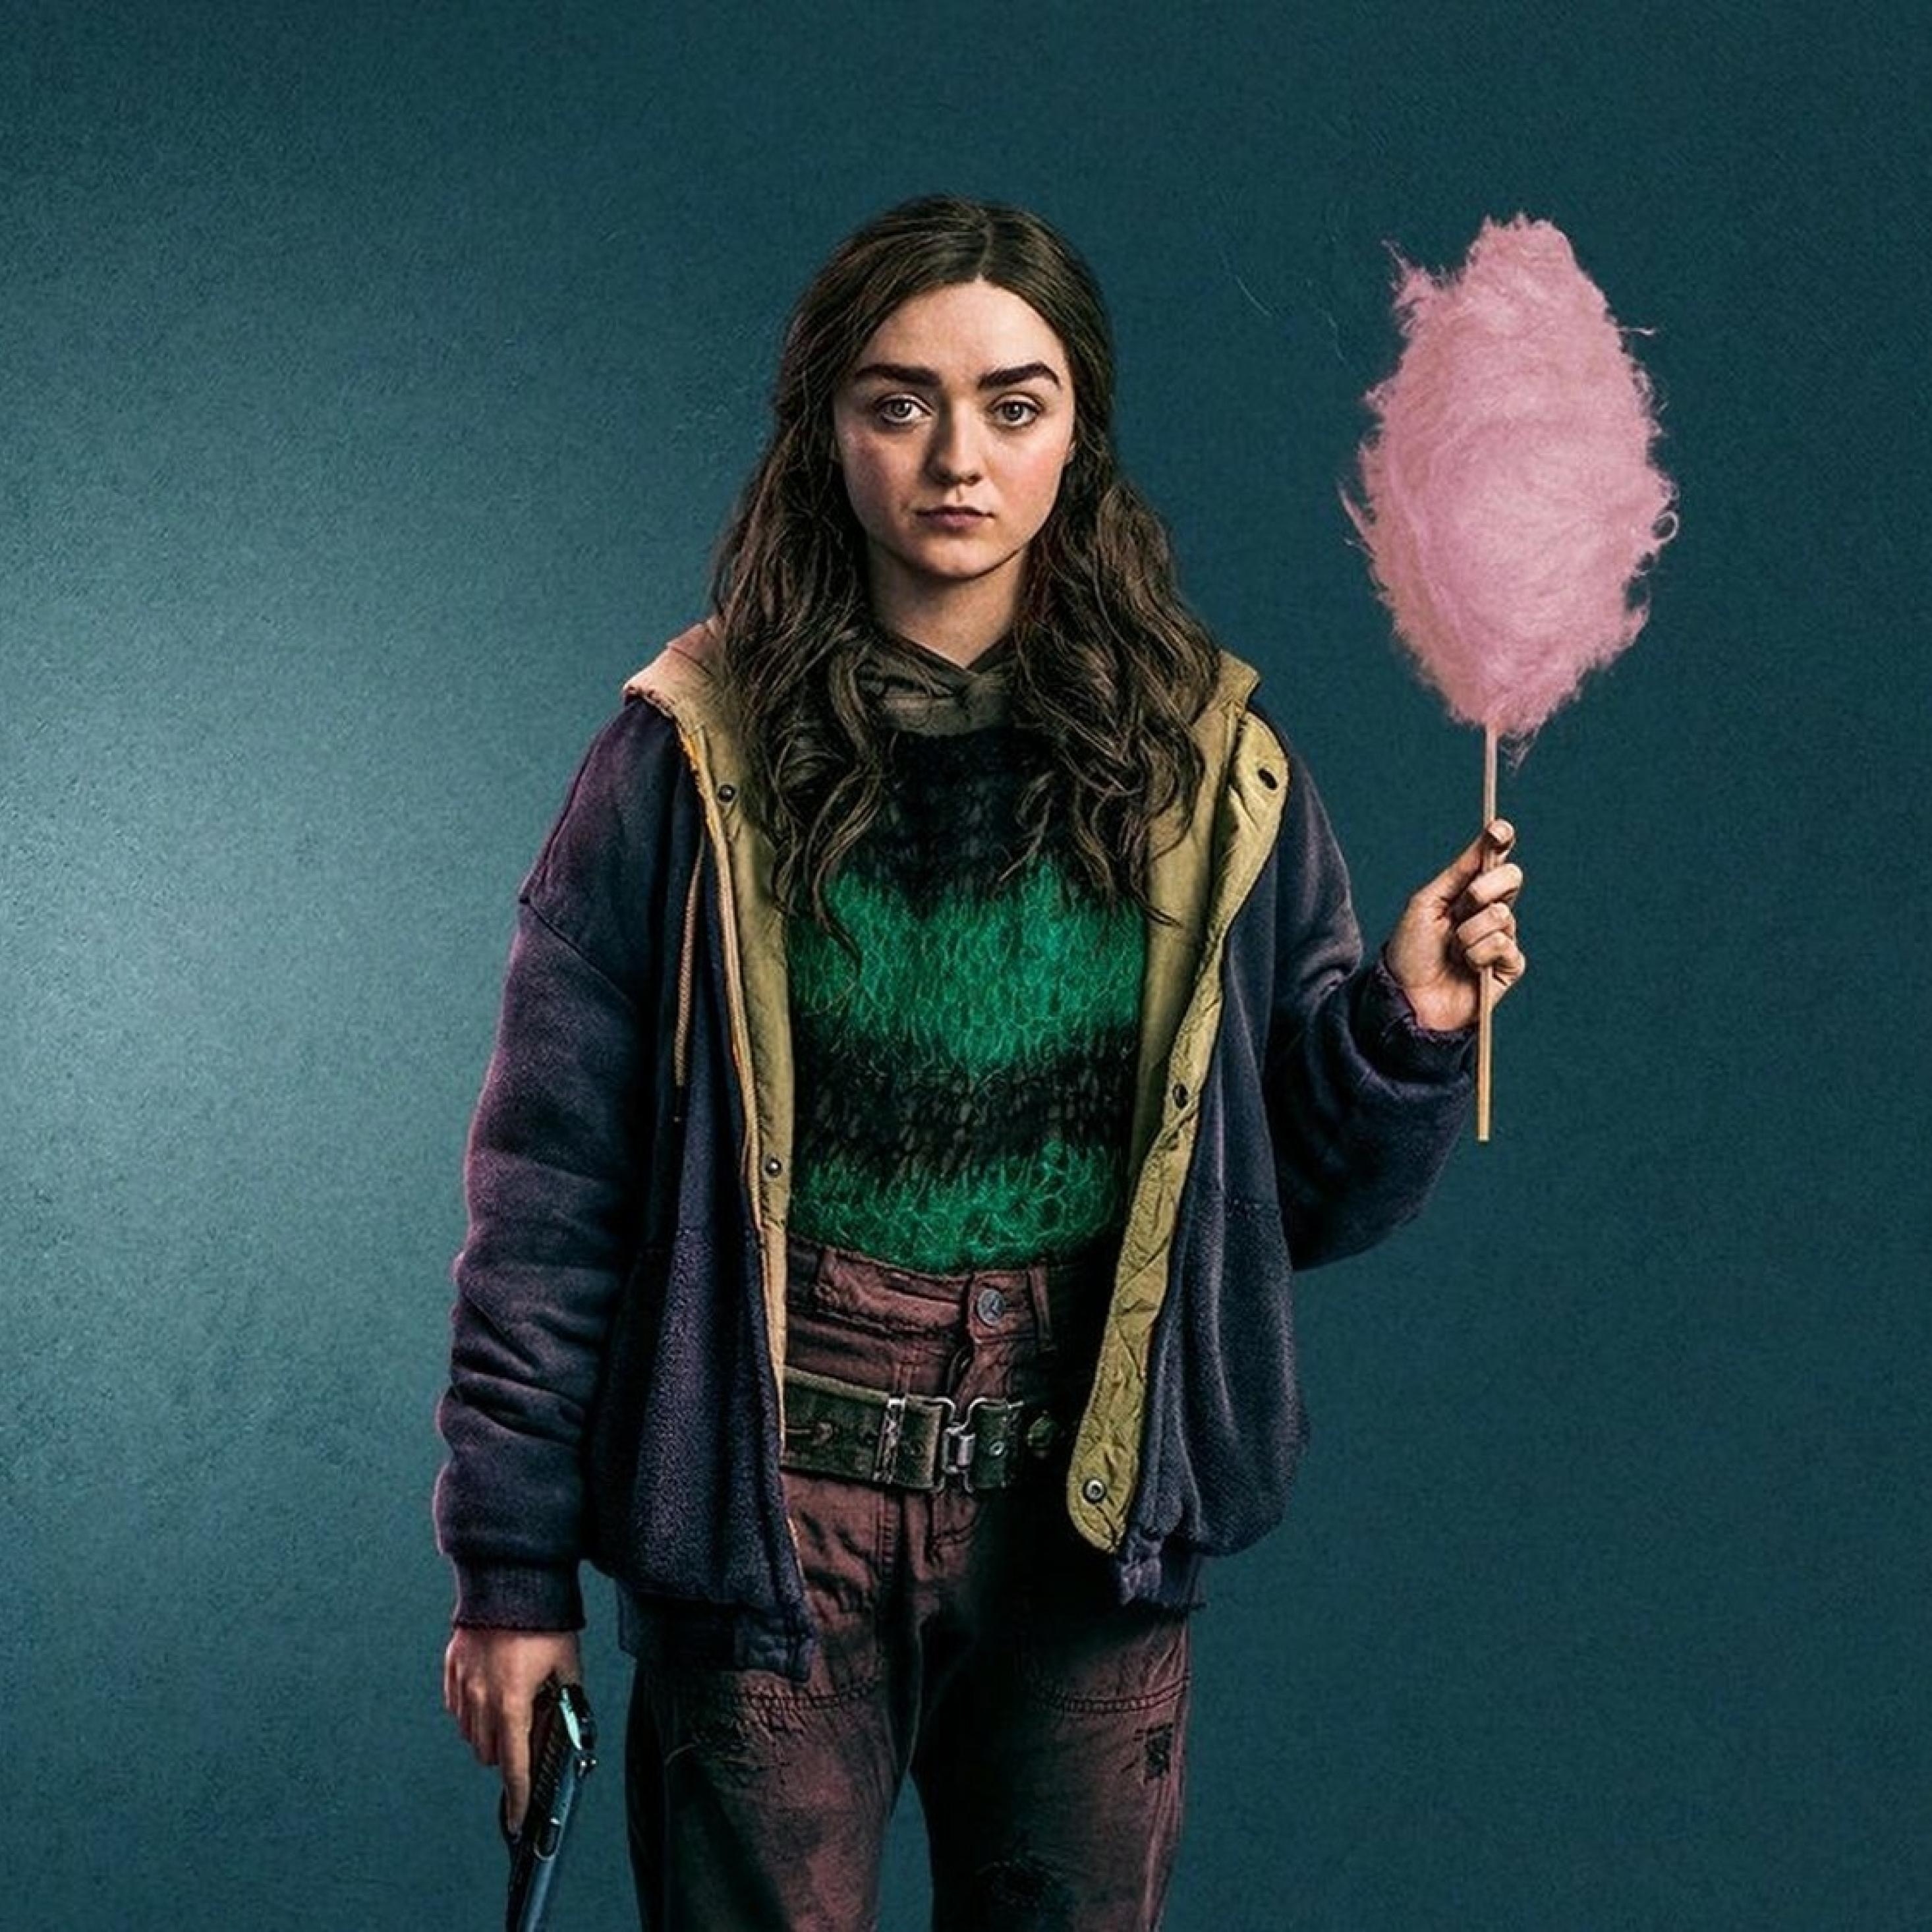 Maisie Williams Two Weeks To Live Wallpaper in 2932x2932 Resolution